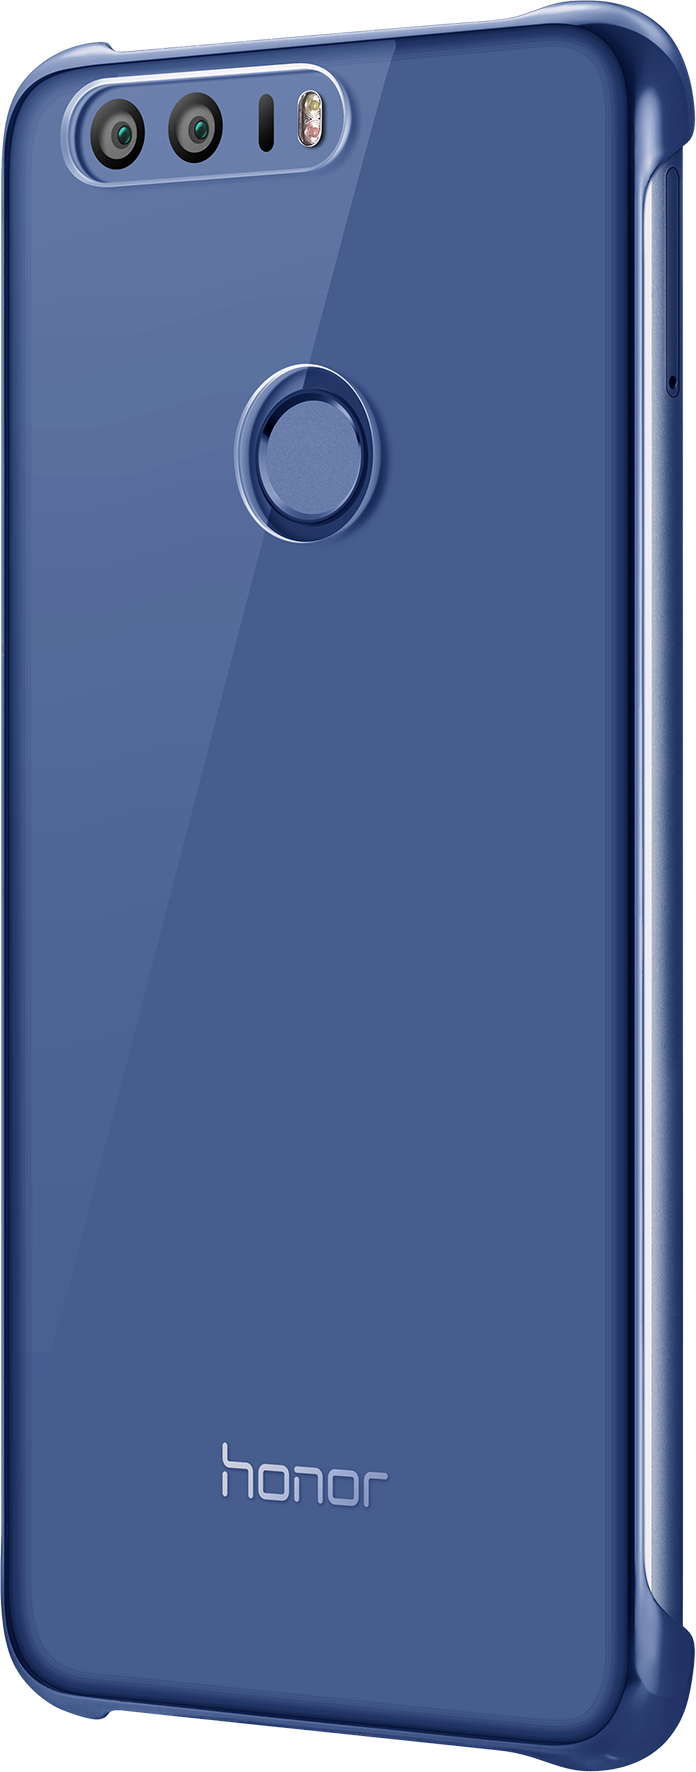 Läs mer om Huawei Hard Case Honor 8 Blue